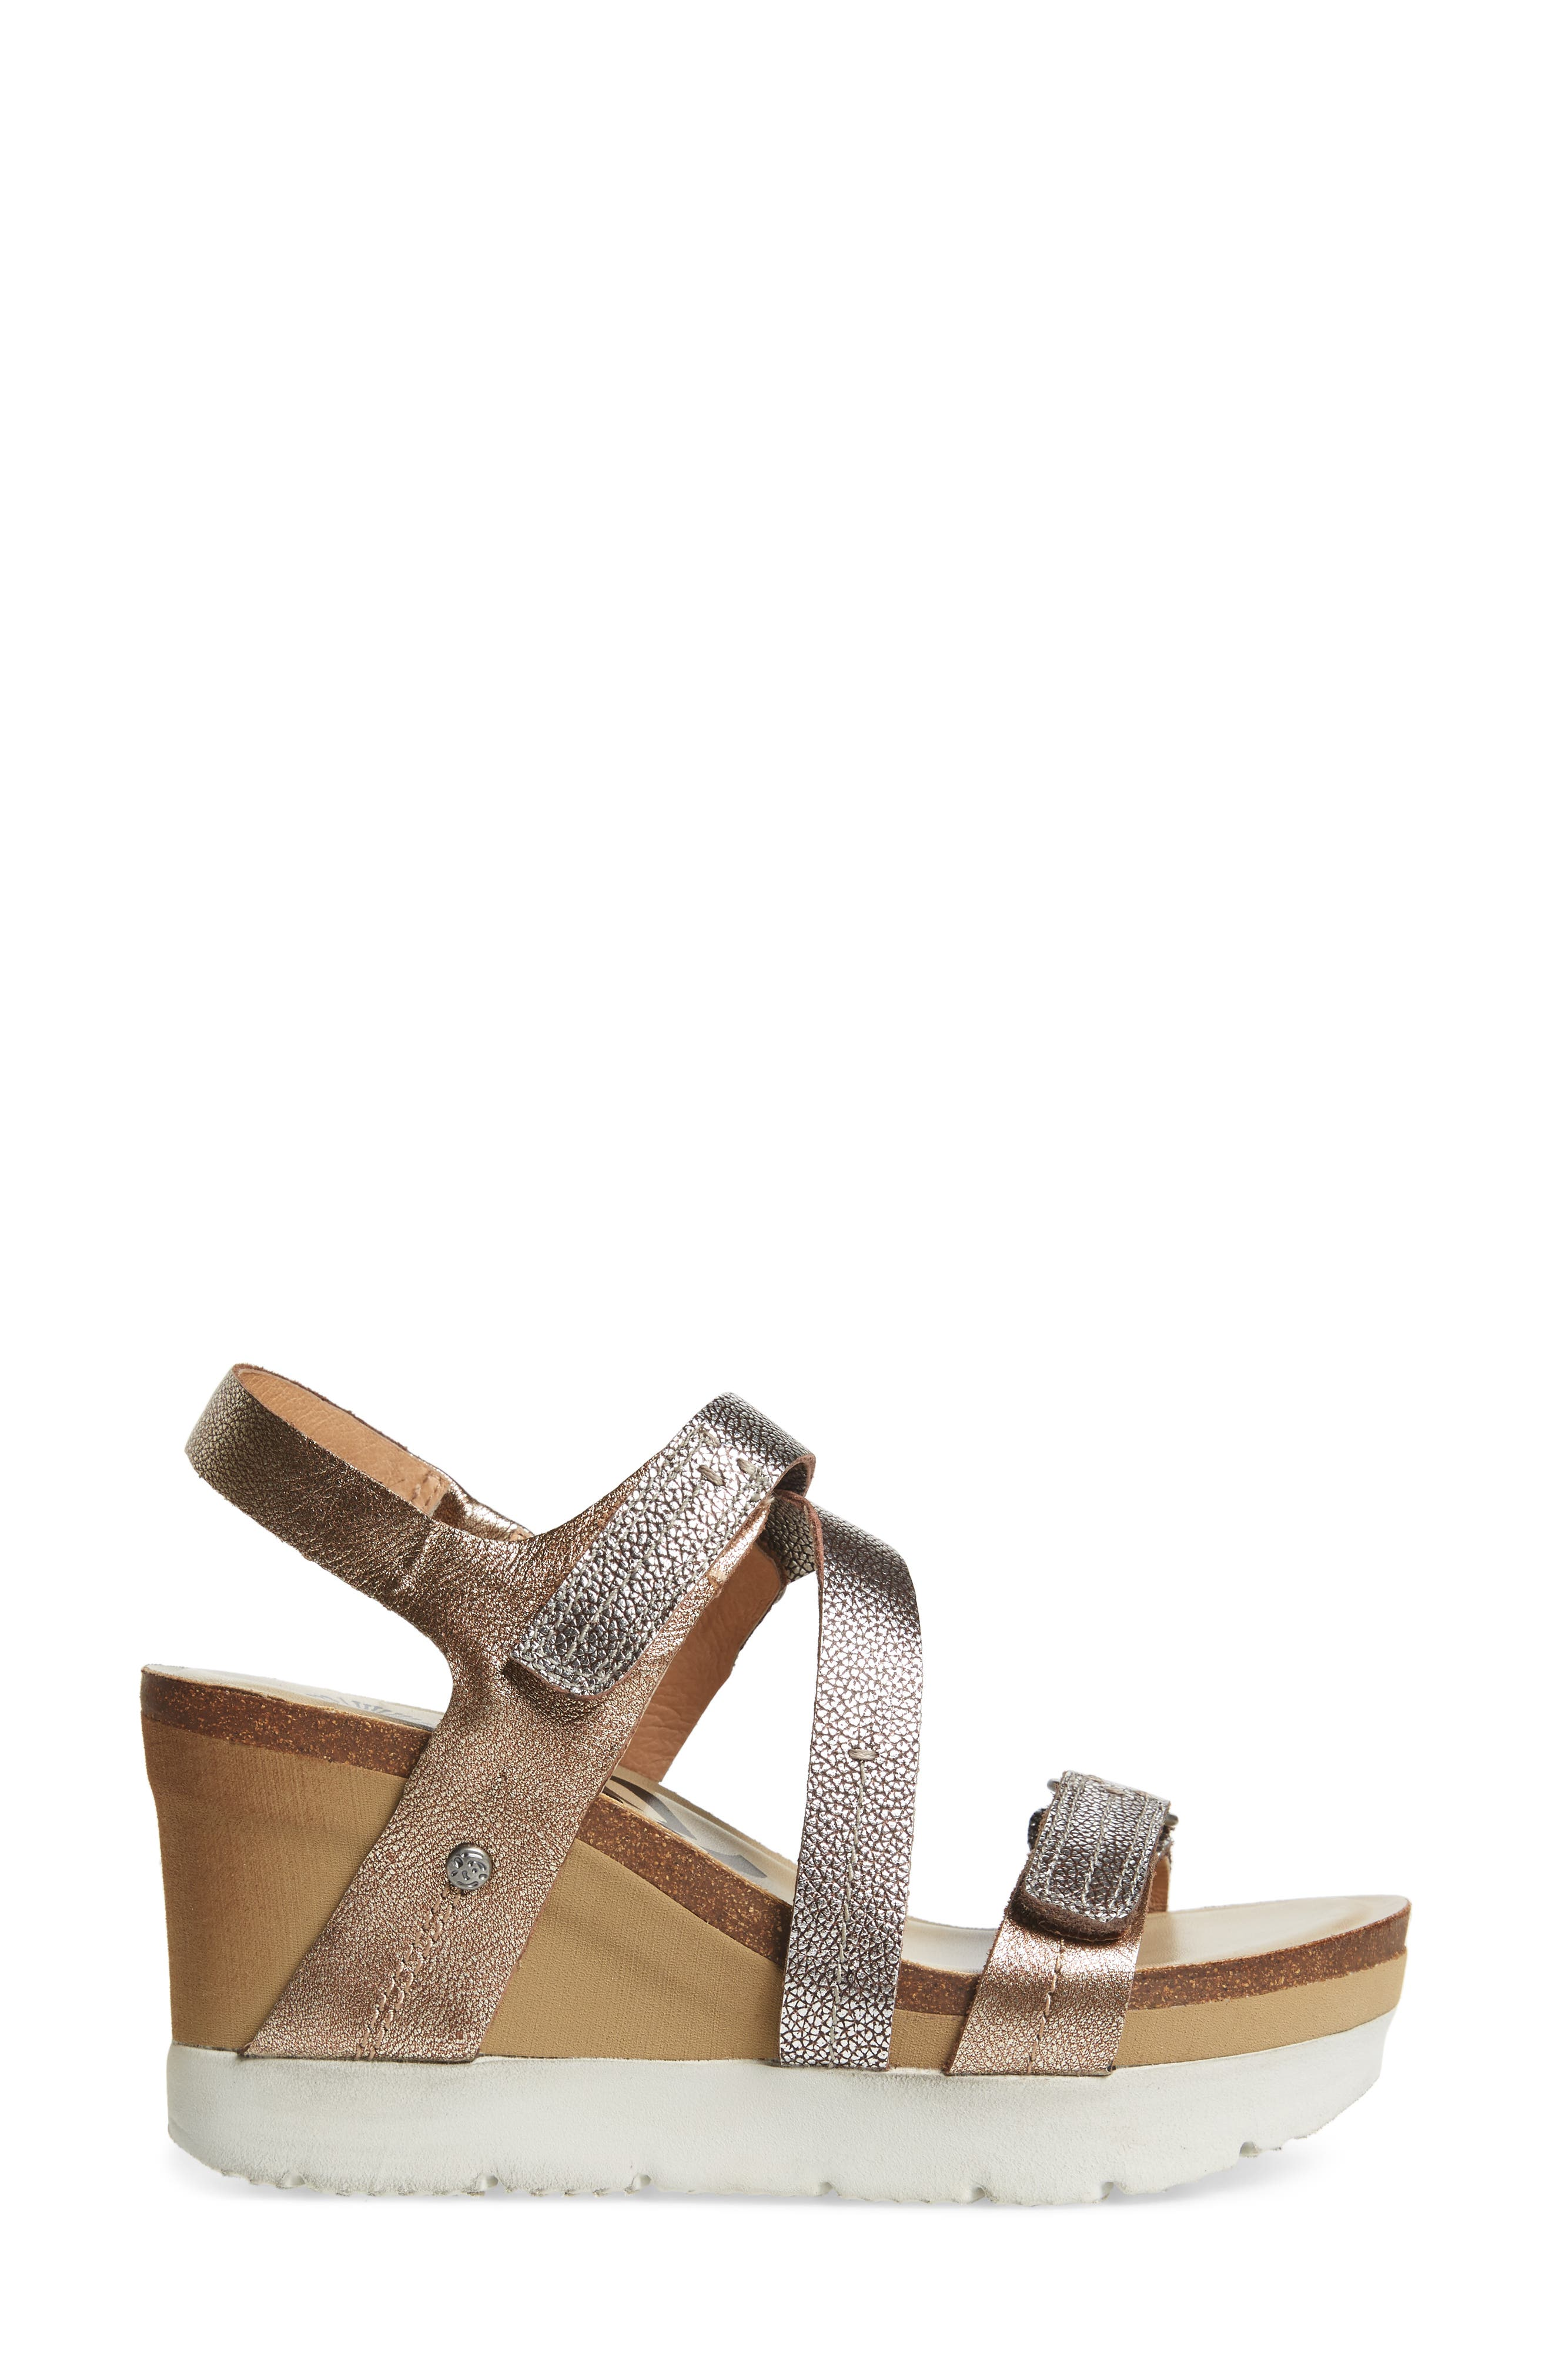 Wavey Wedge Sandal,                             Alternate thumbnail 3, color,                             Gold Leather